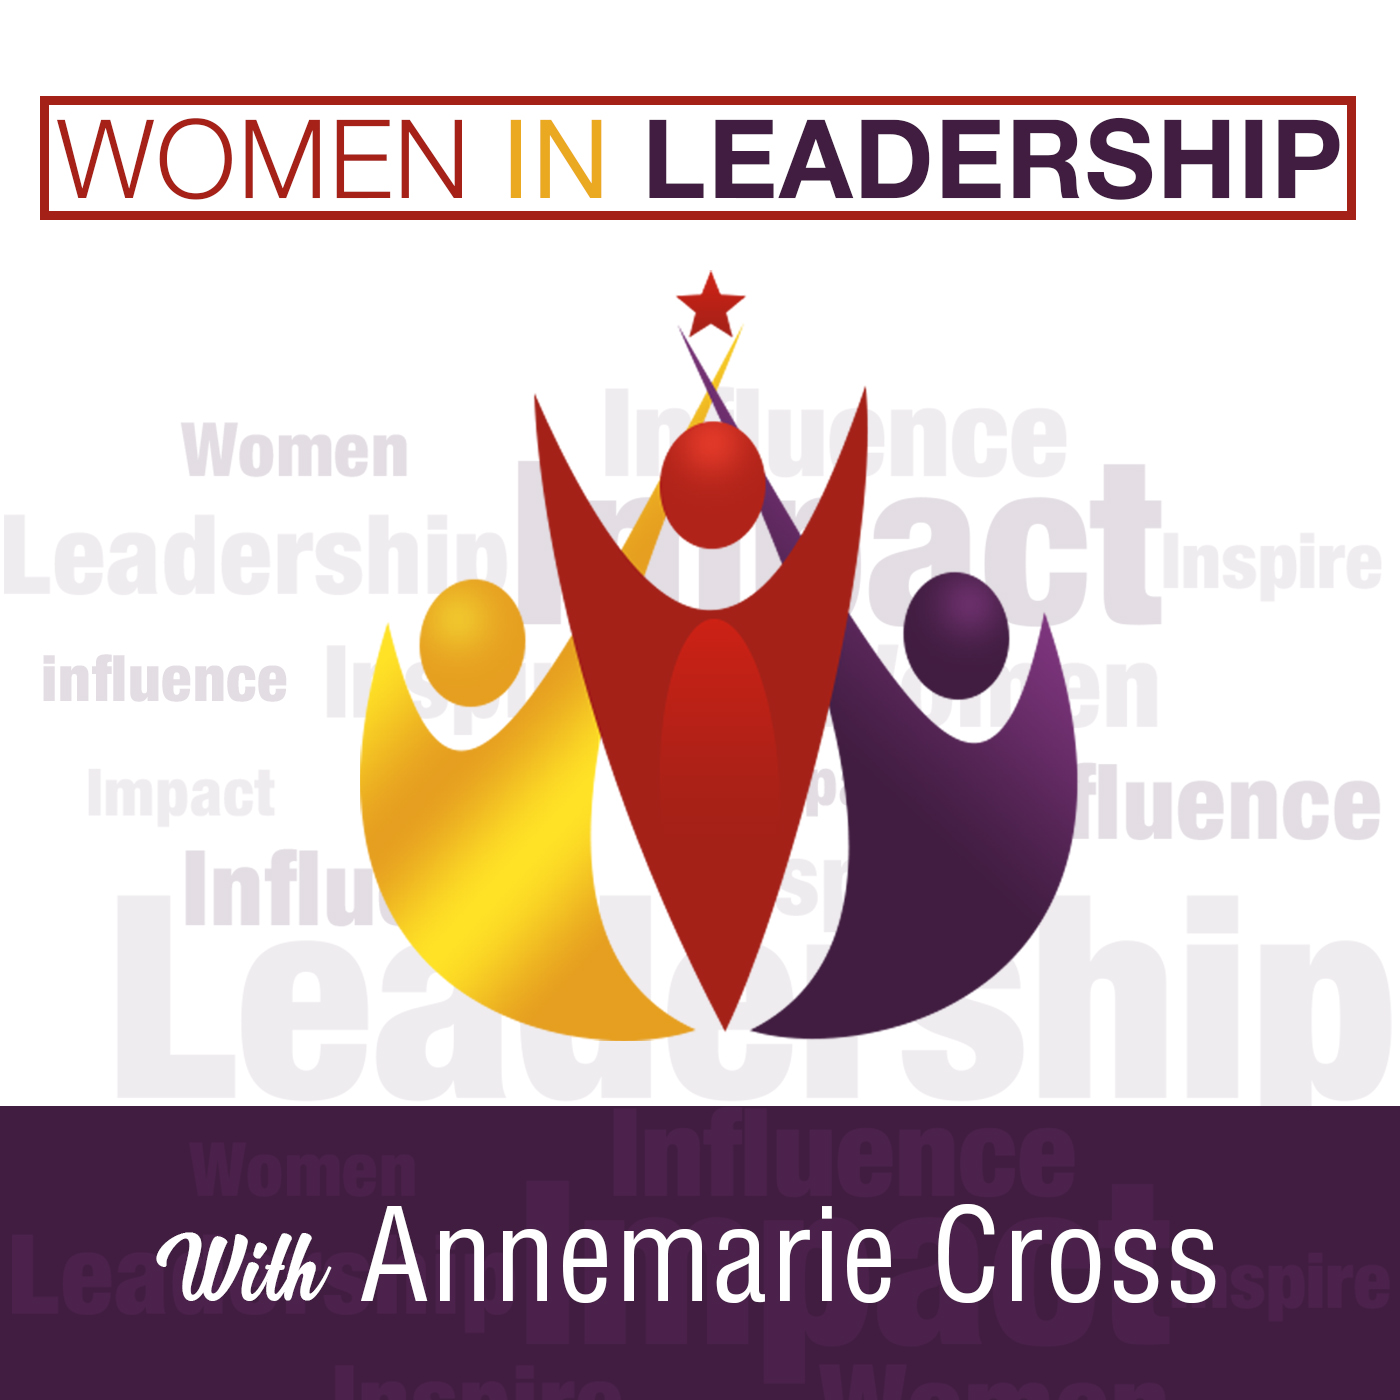 women in leadership Women in leadership conference fall 2018 developing a global mindset: strategic perspectives for women leaders october 26, 2018 - 9:00-3:00 hilton garden inn at levis commons, perrysburg, ohio corporate partners: sponsors in review fall 2017 fall 2016 fall 2015 spring 2015 spring 2014.